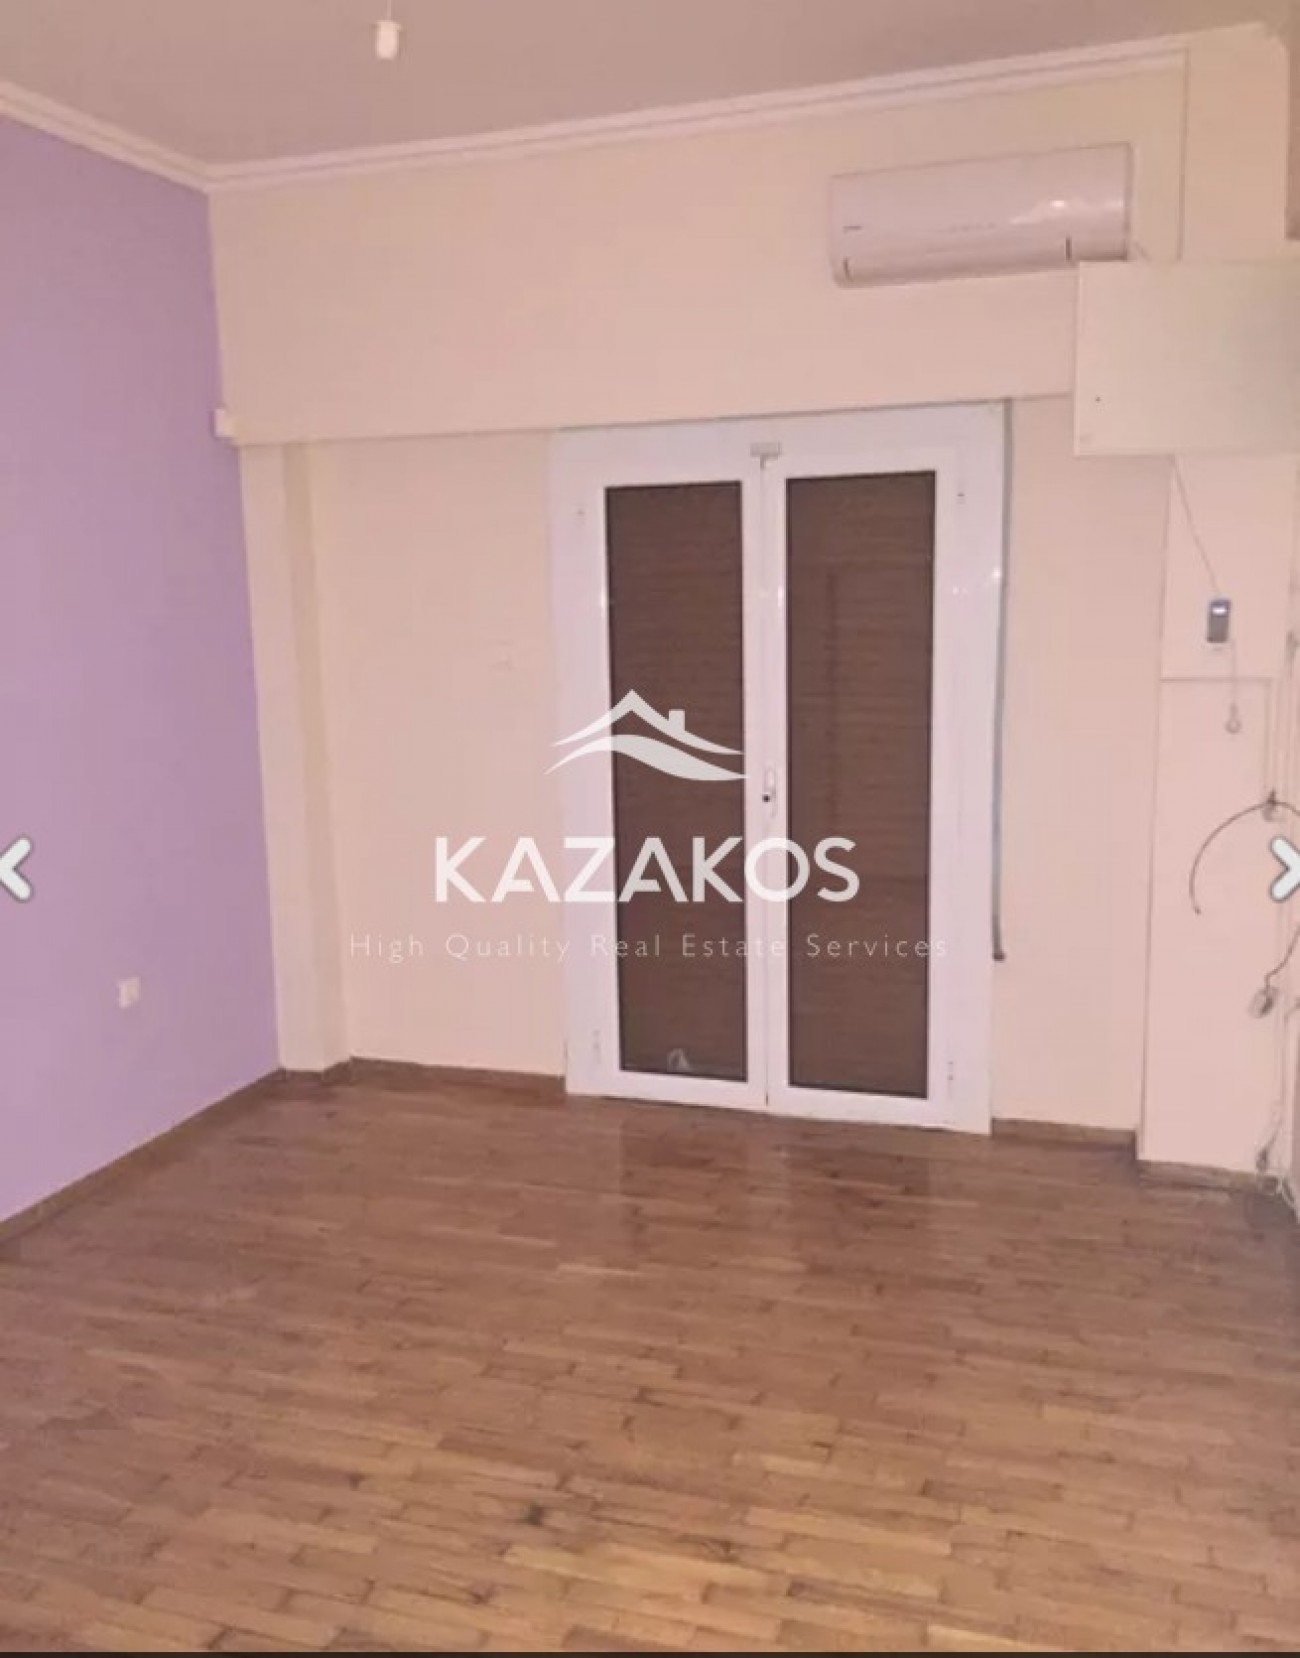 Apartment for Rent in Vyronas, Central & South Region of Athens, Greece